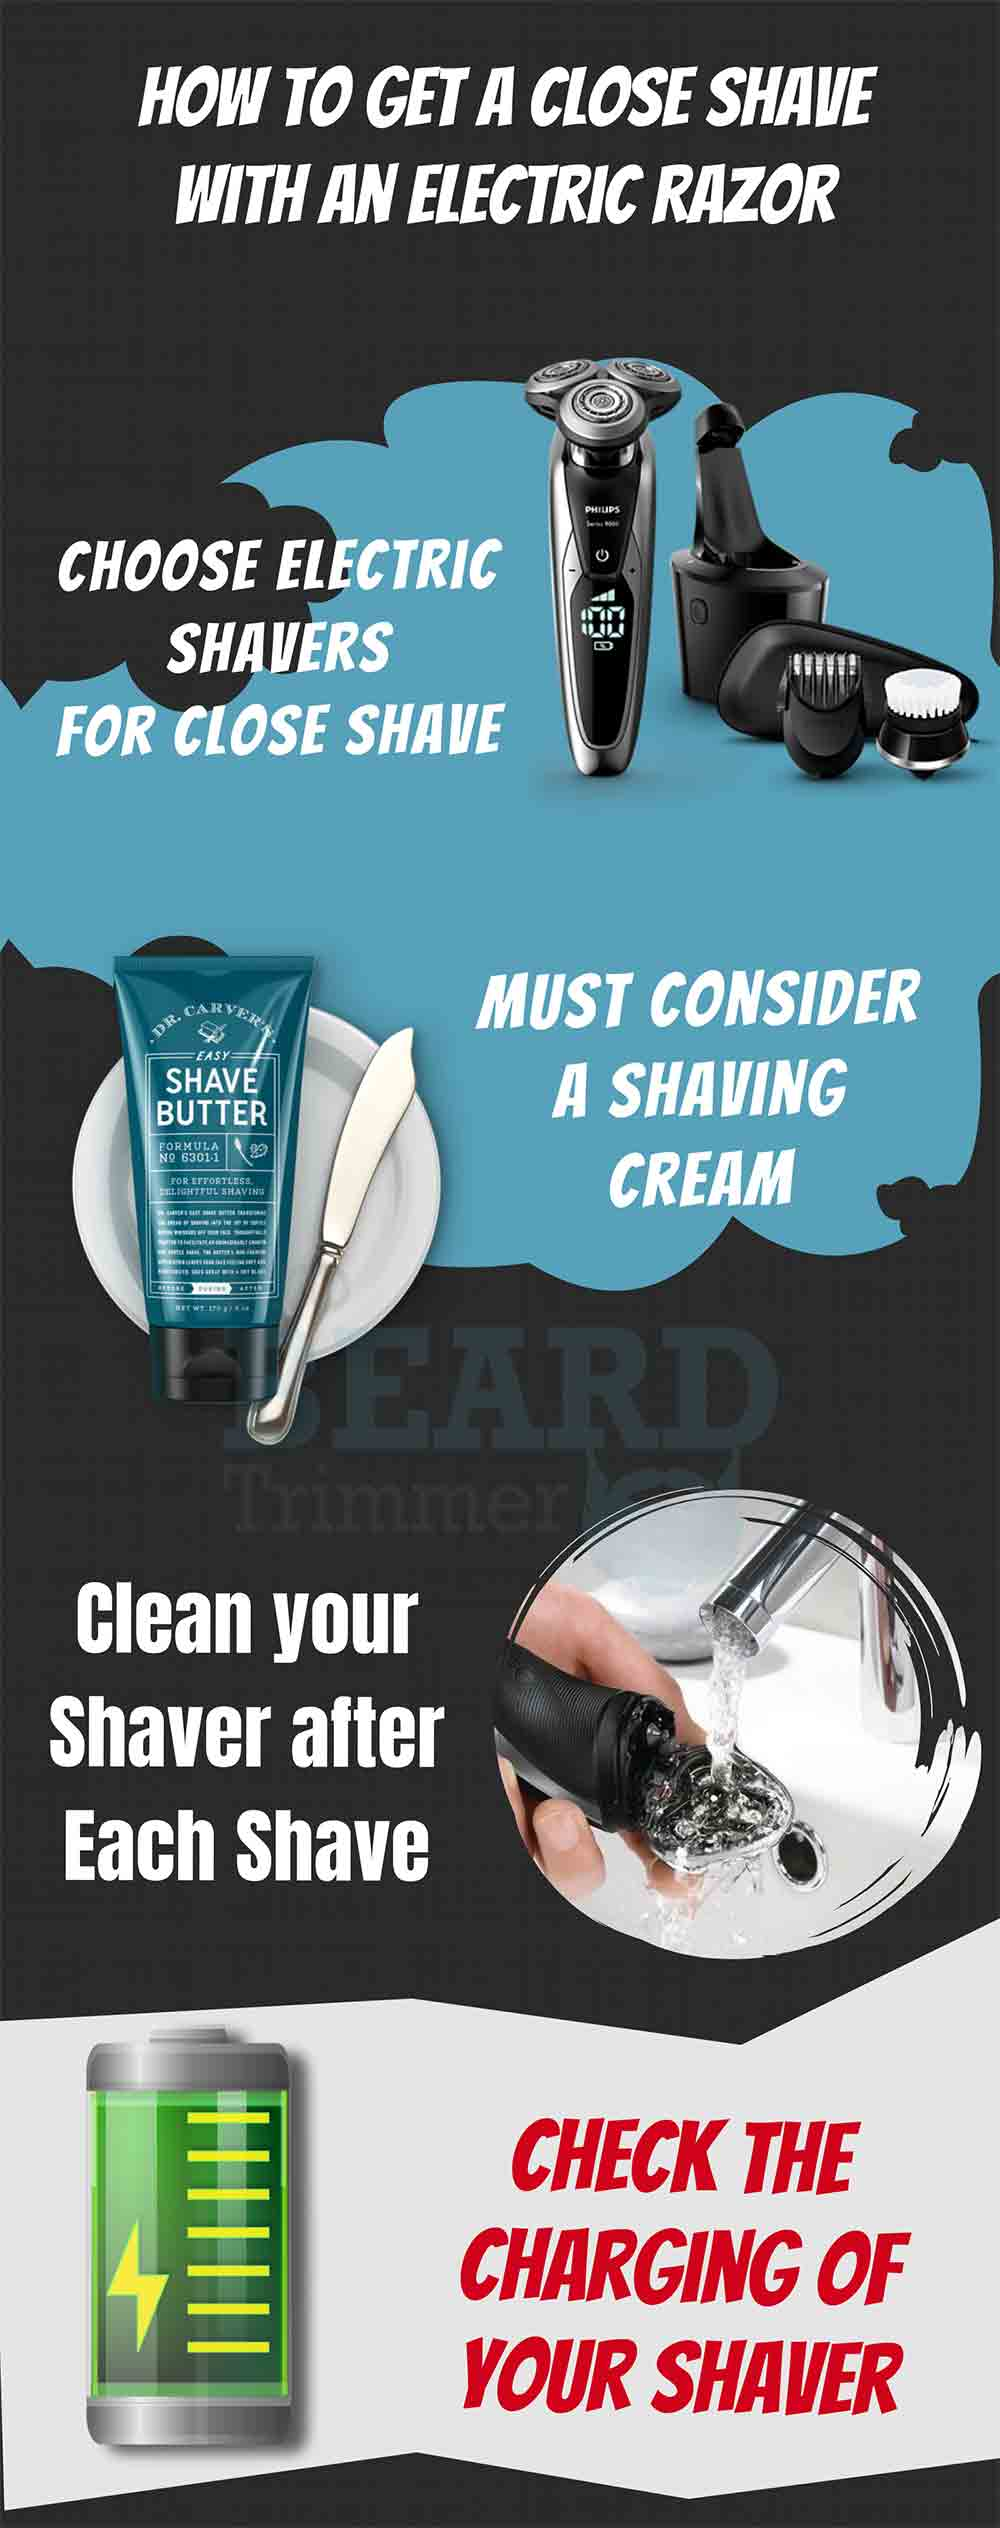 Some Amazing Tips to Get a Close Shave with an Electric Shaver